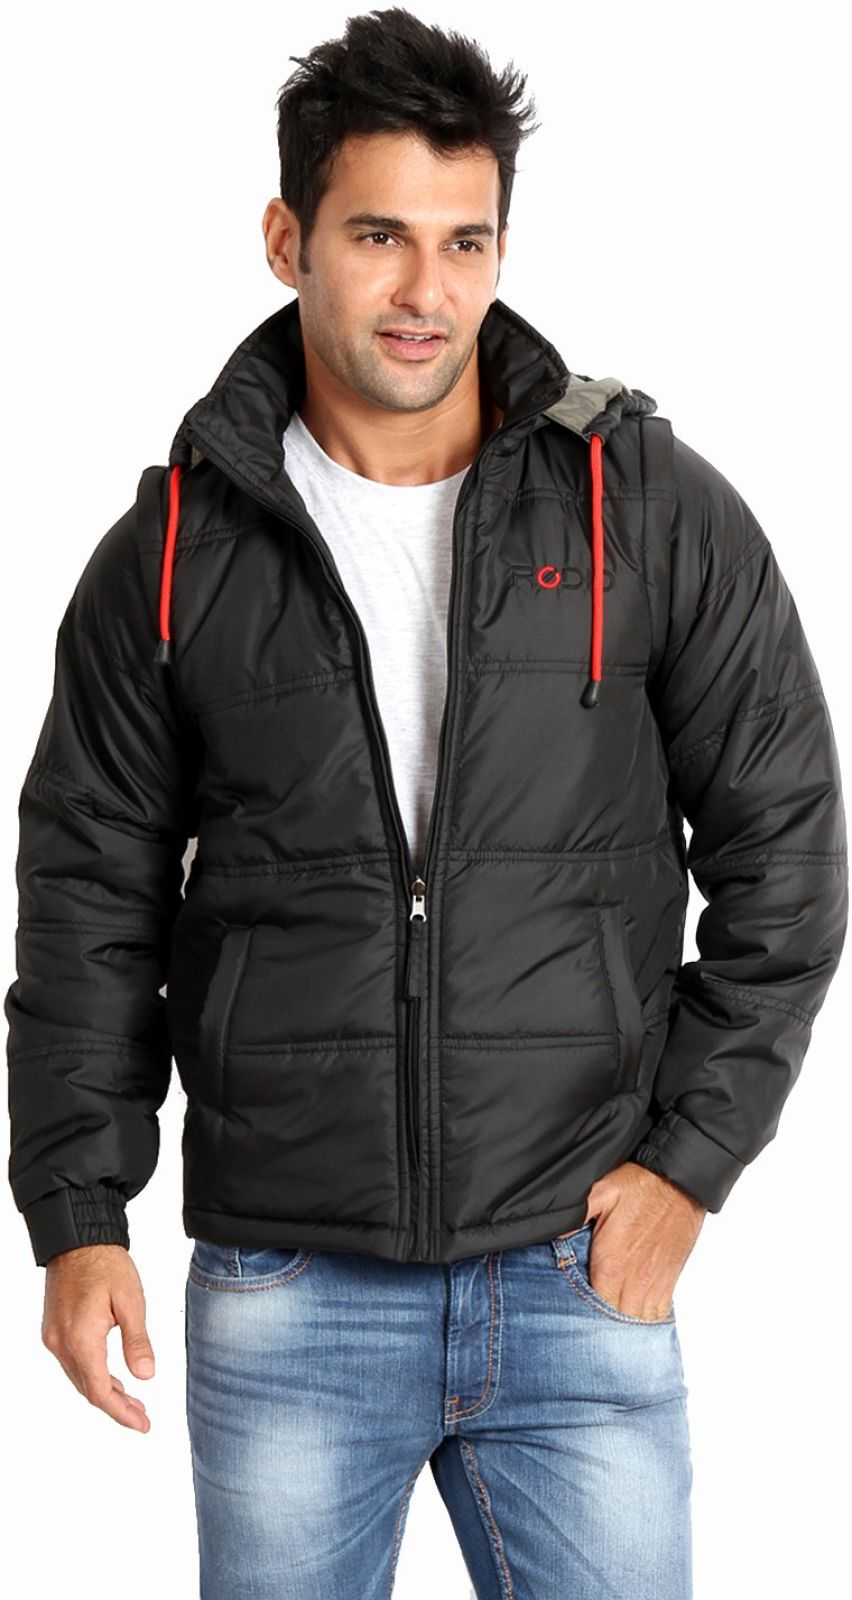 Rodid Full Sleeve Solid Mens Jacket